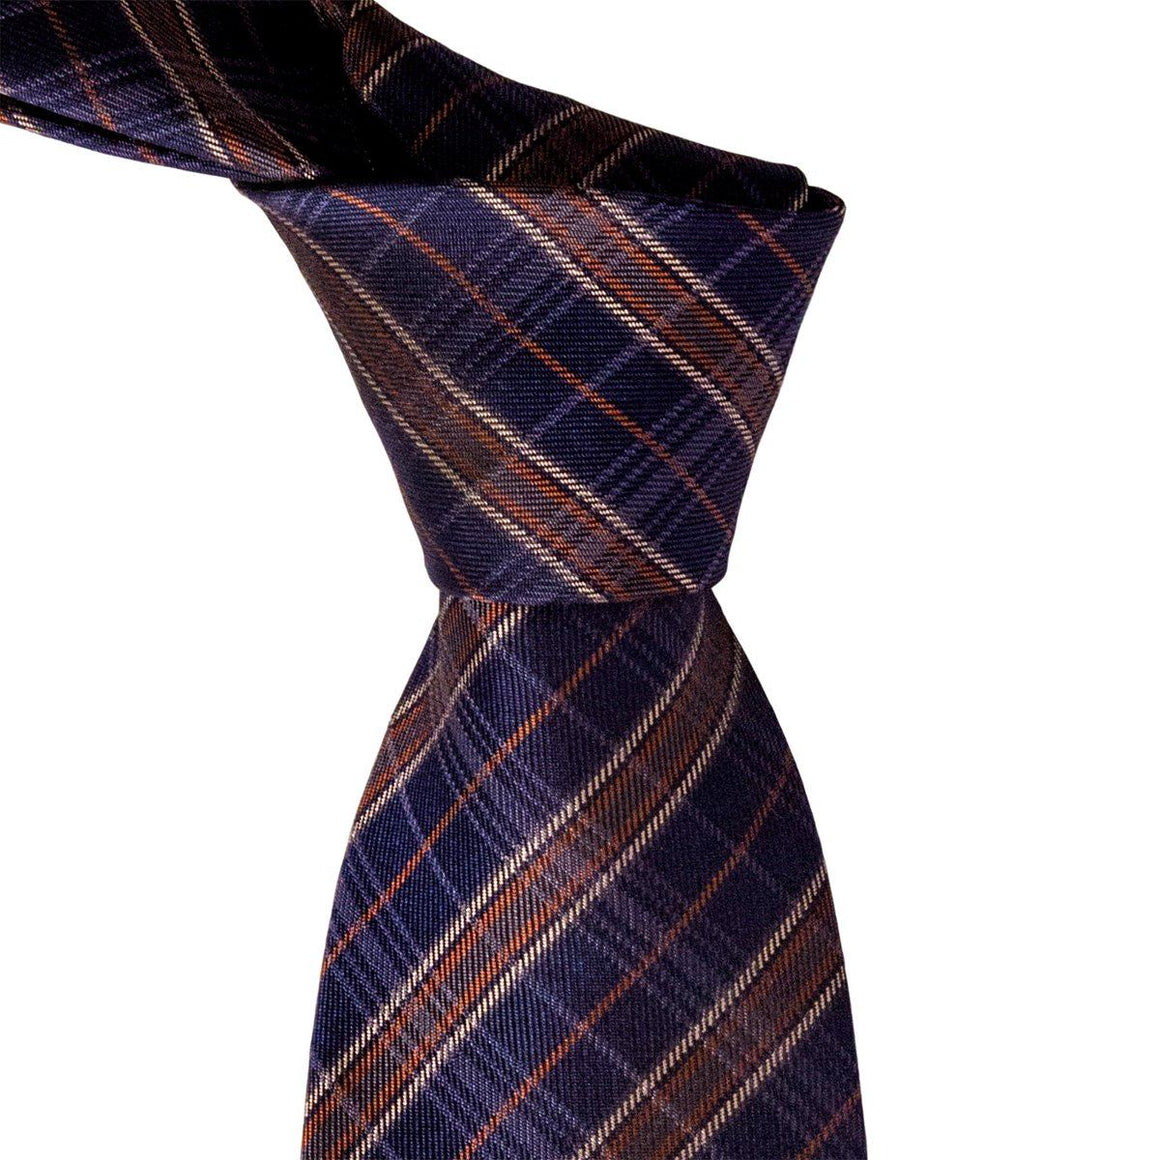 Maxwell - TieThis Neckwear and Accessories and TieThis.com